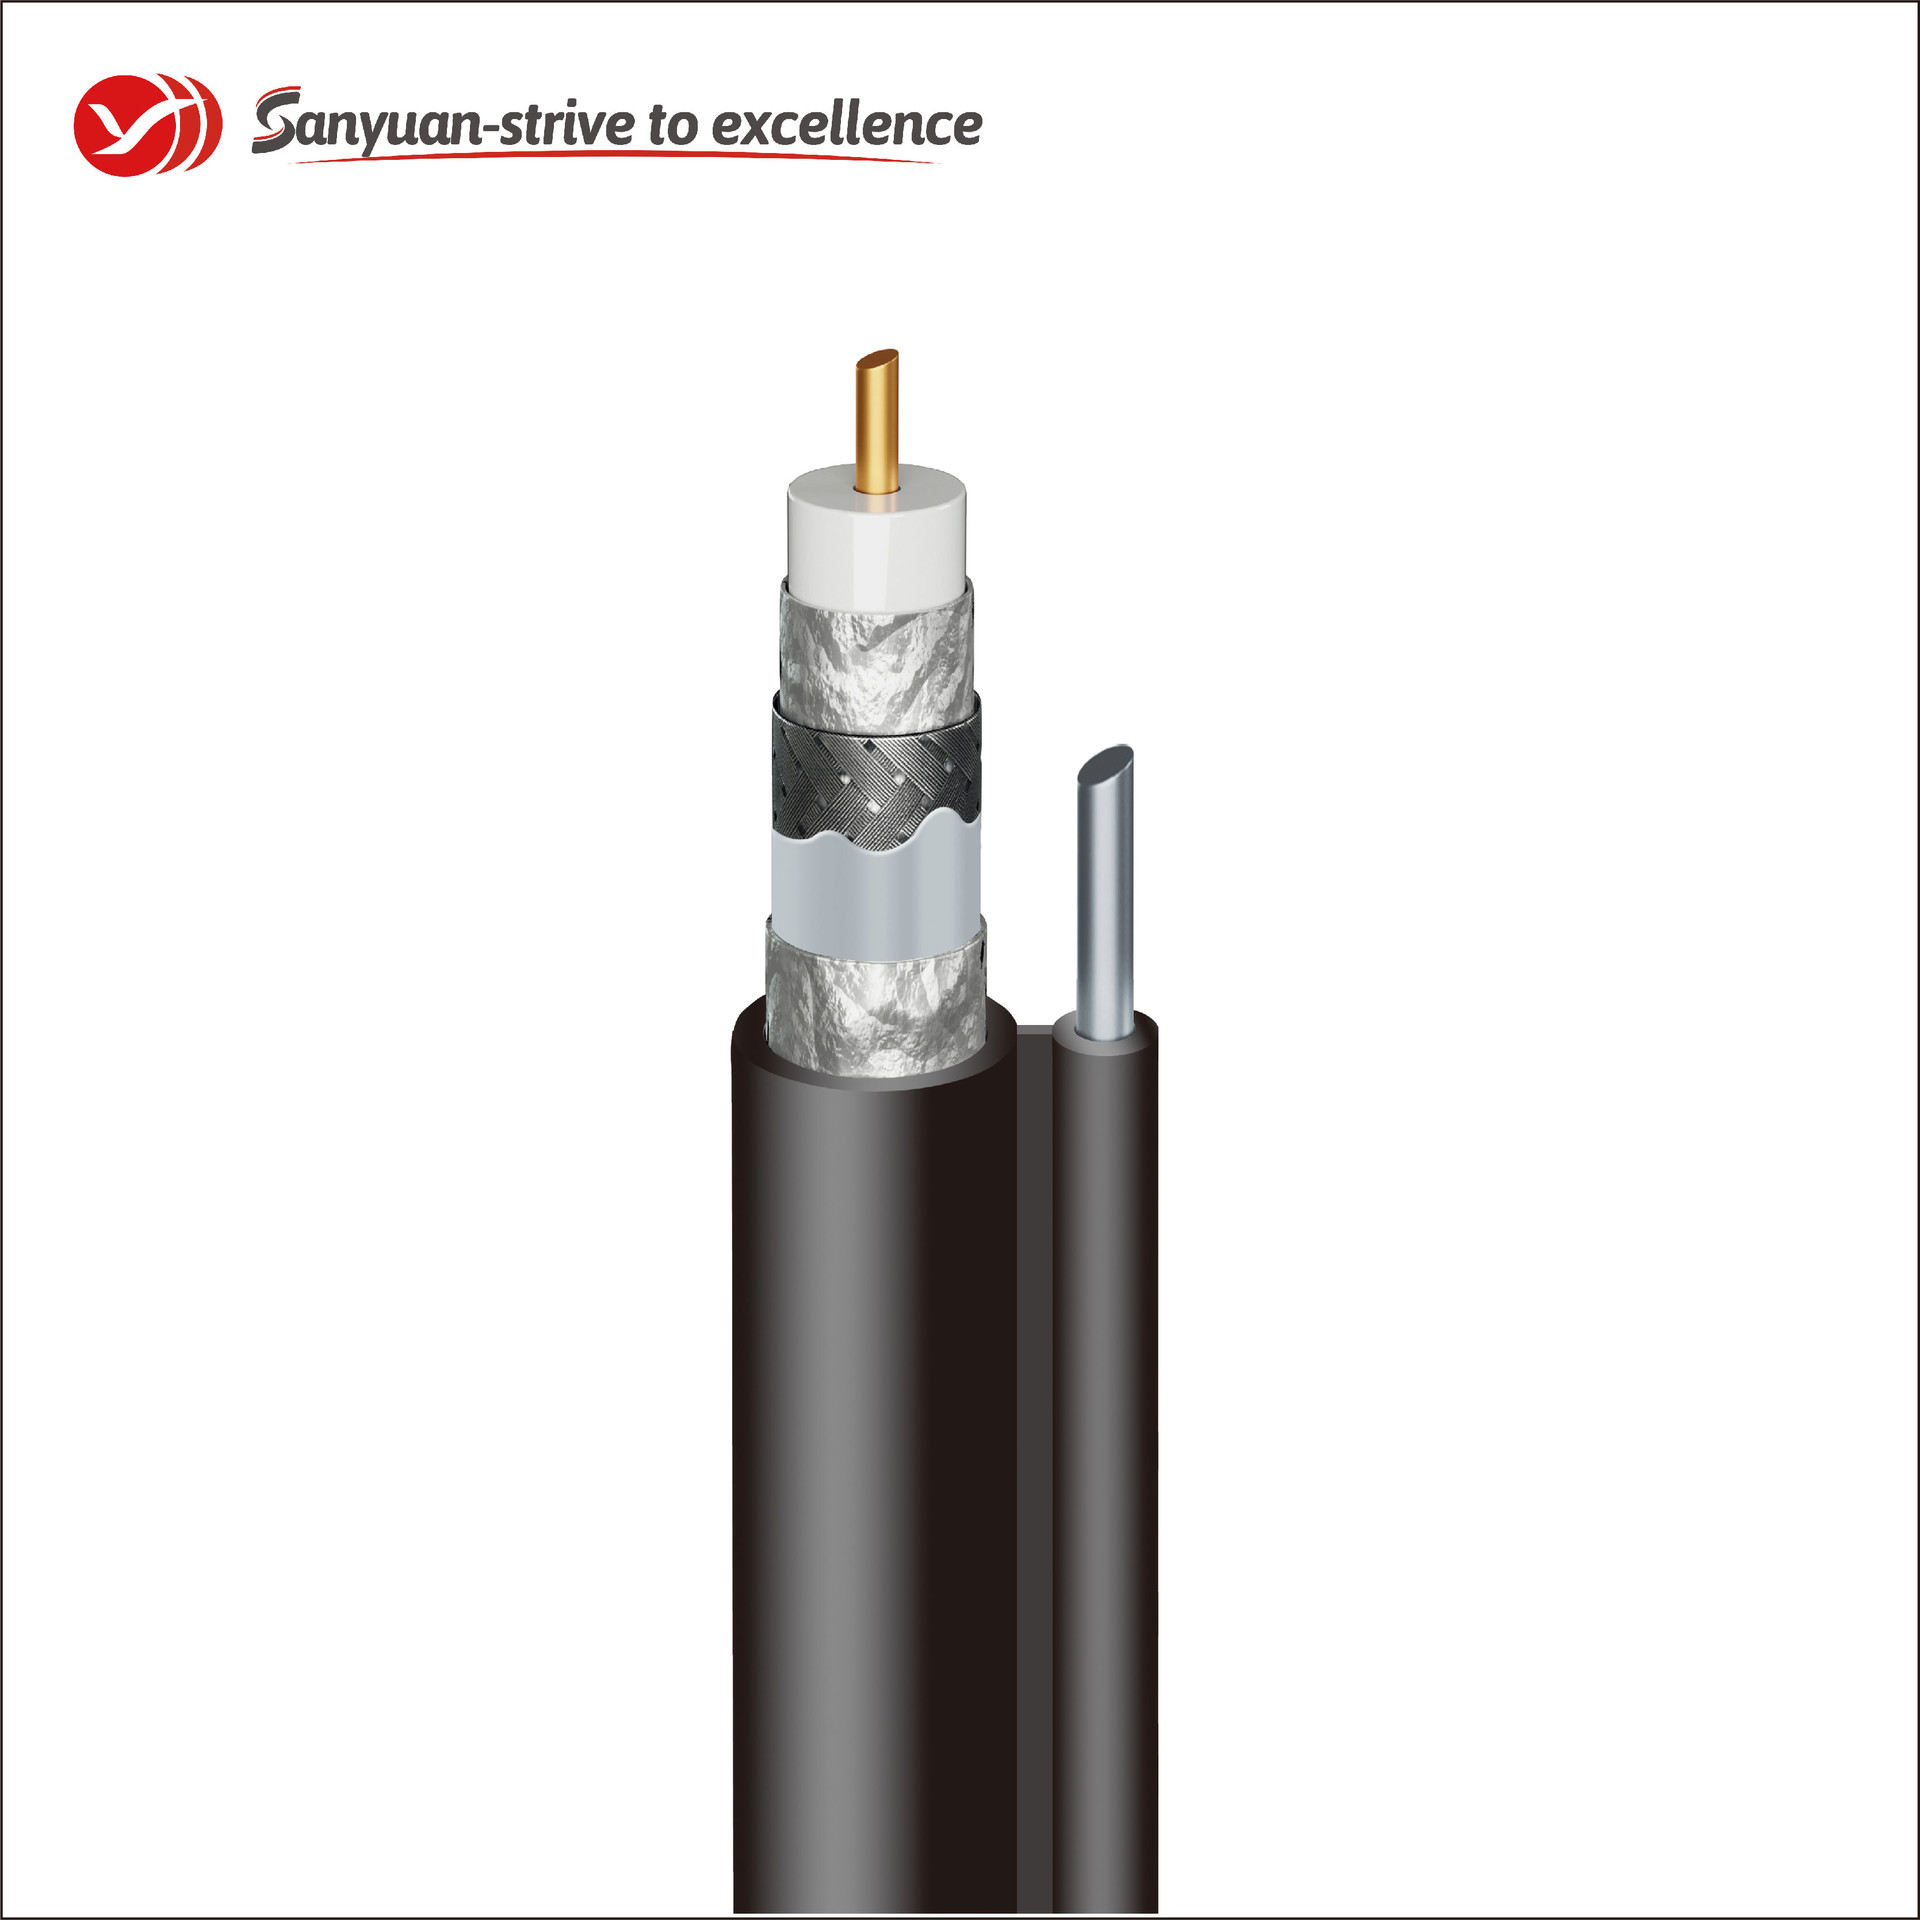 RG11 Coaxial Cable 75 Ohm Black PVC Jacket With Messenger SYRG11TSVM